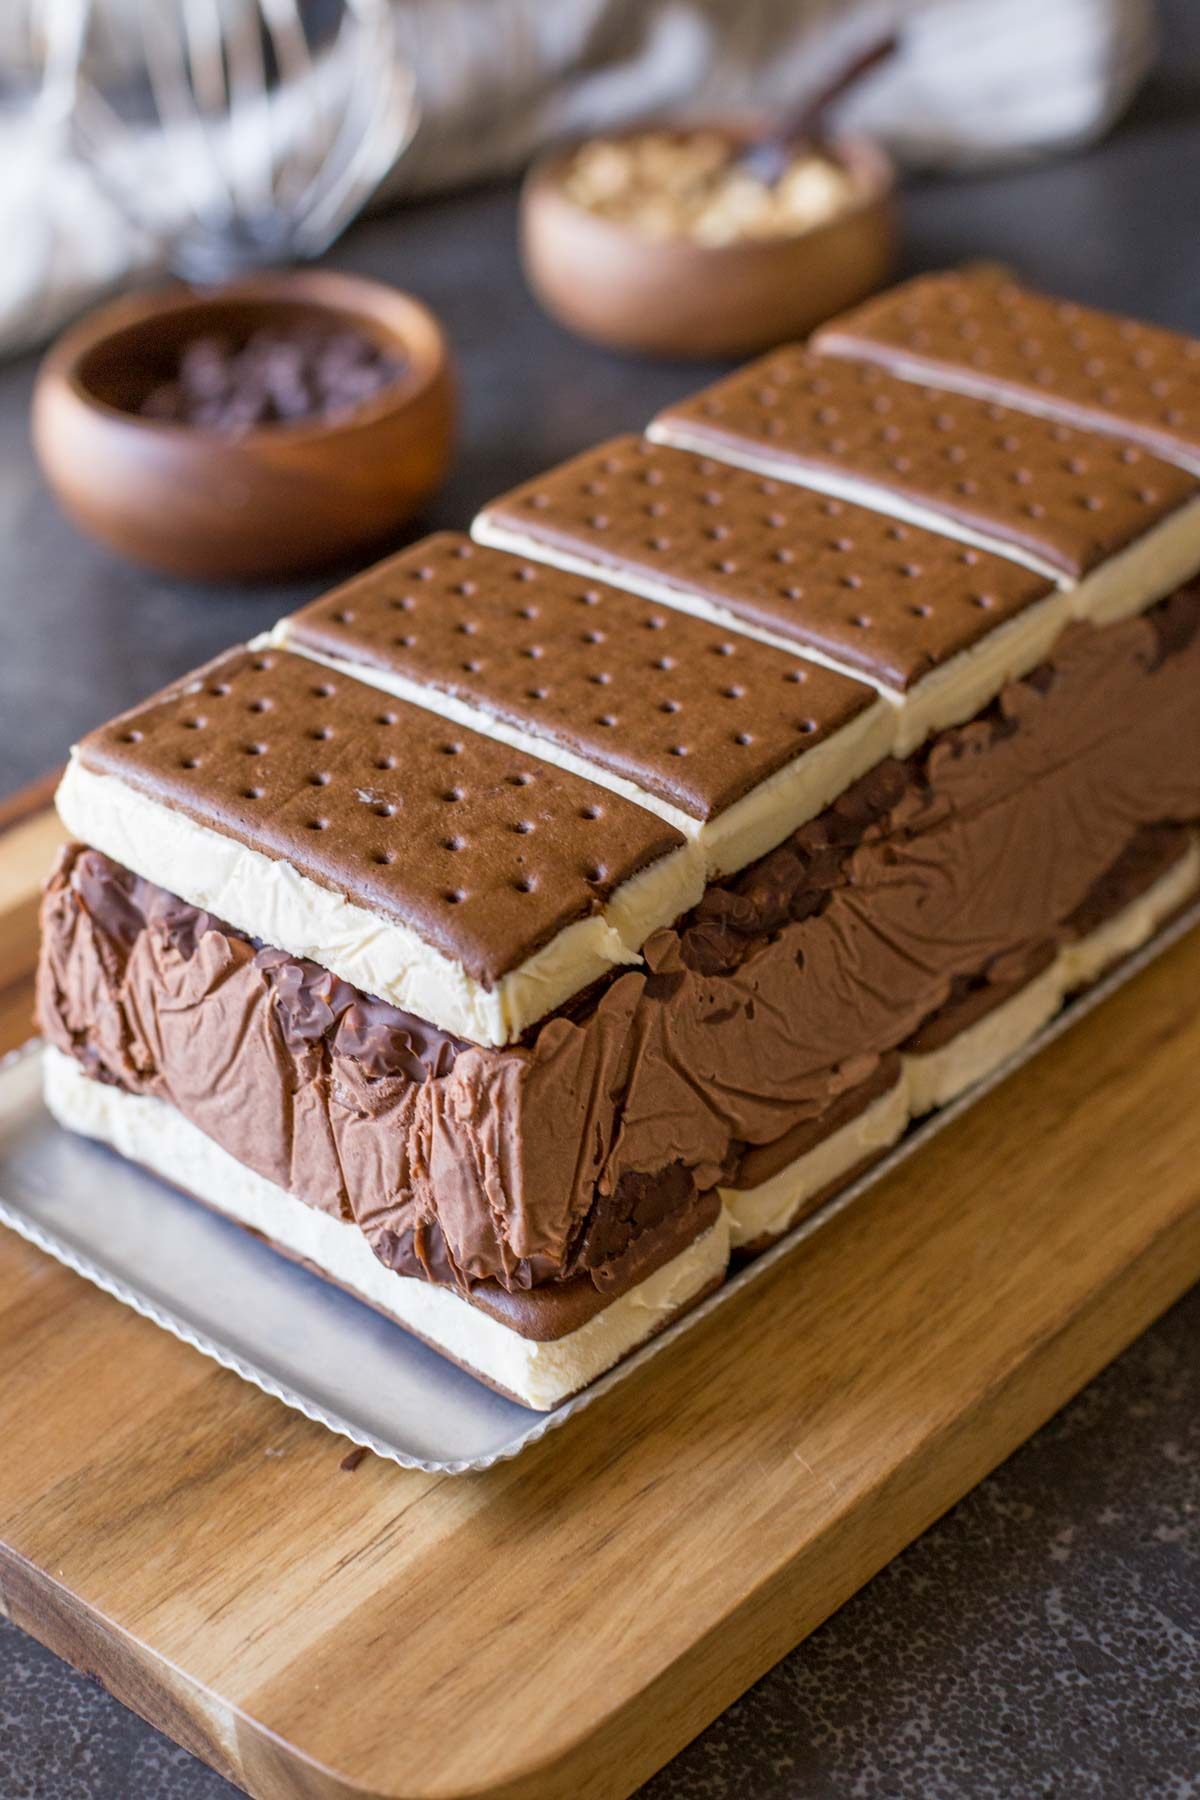 Chocolate Peanut Butter Ice Cream Slice Cake before the whipped cream layer is put on.